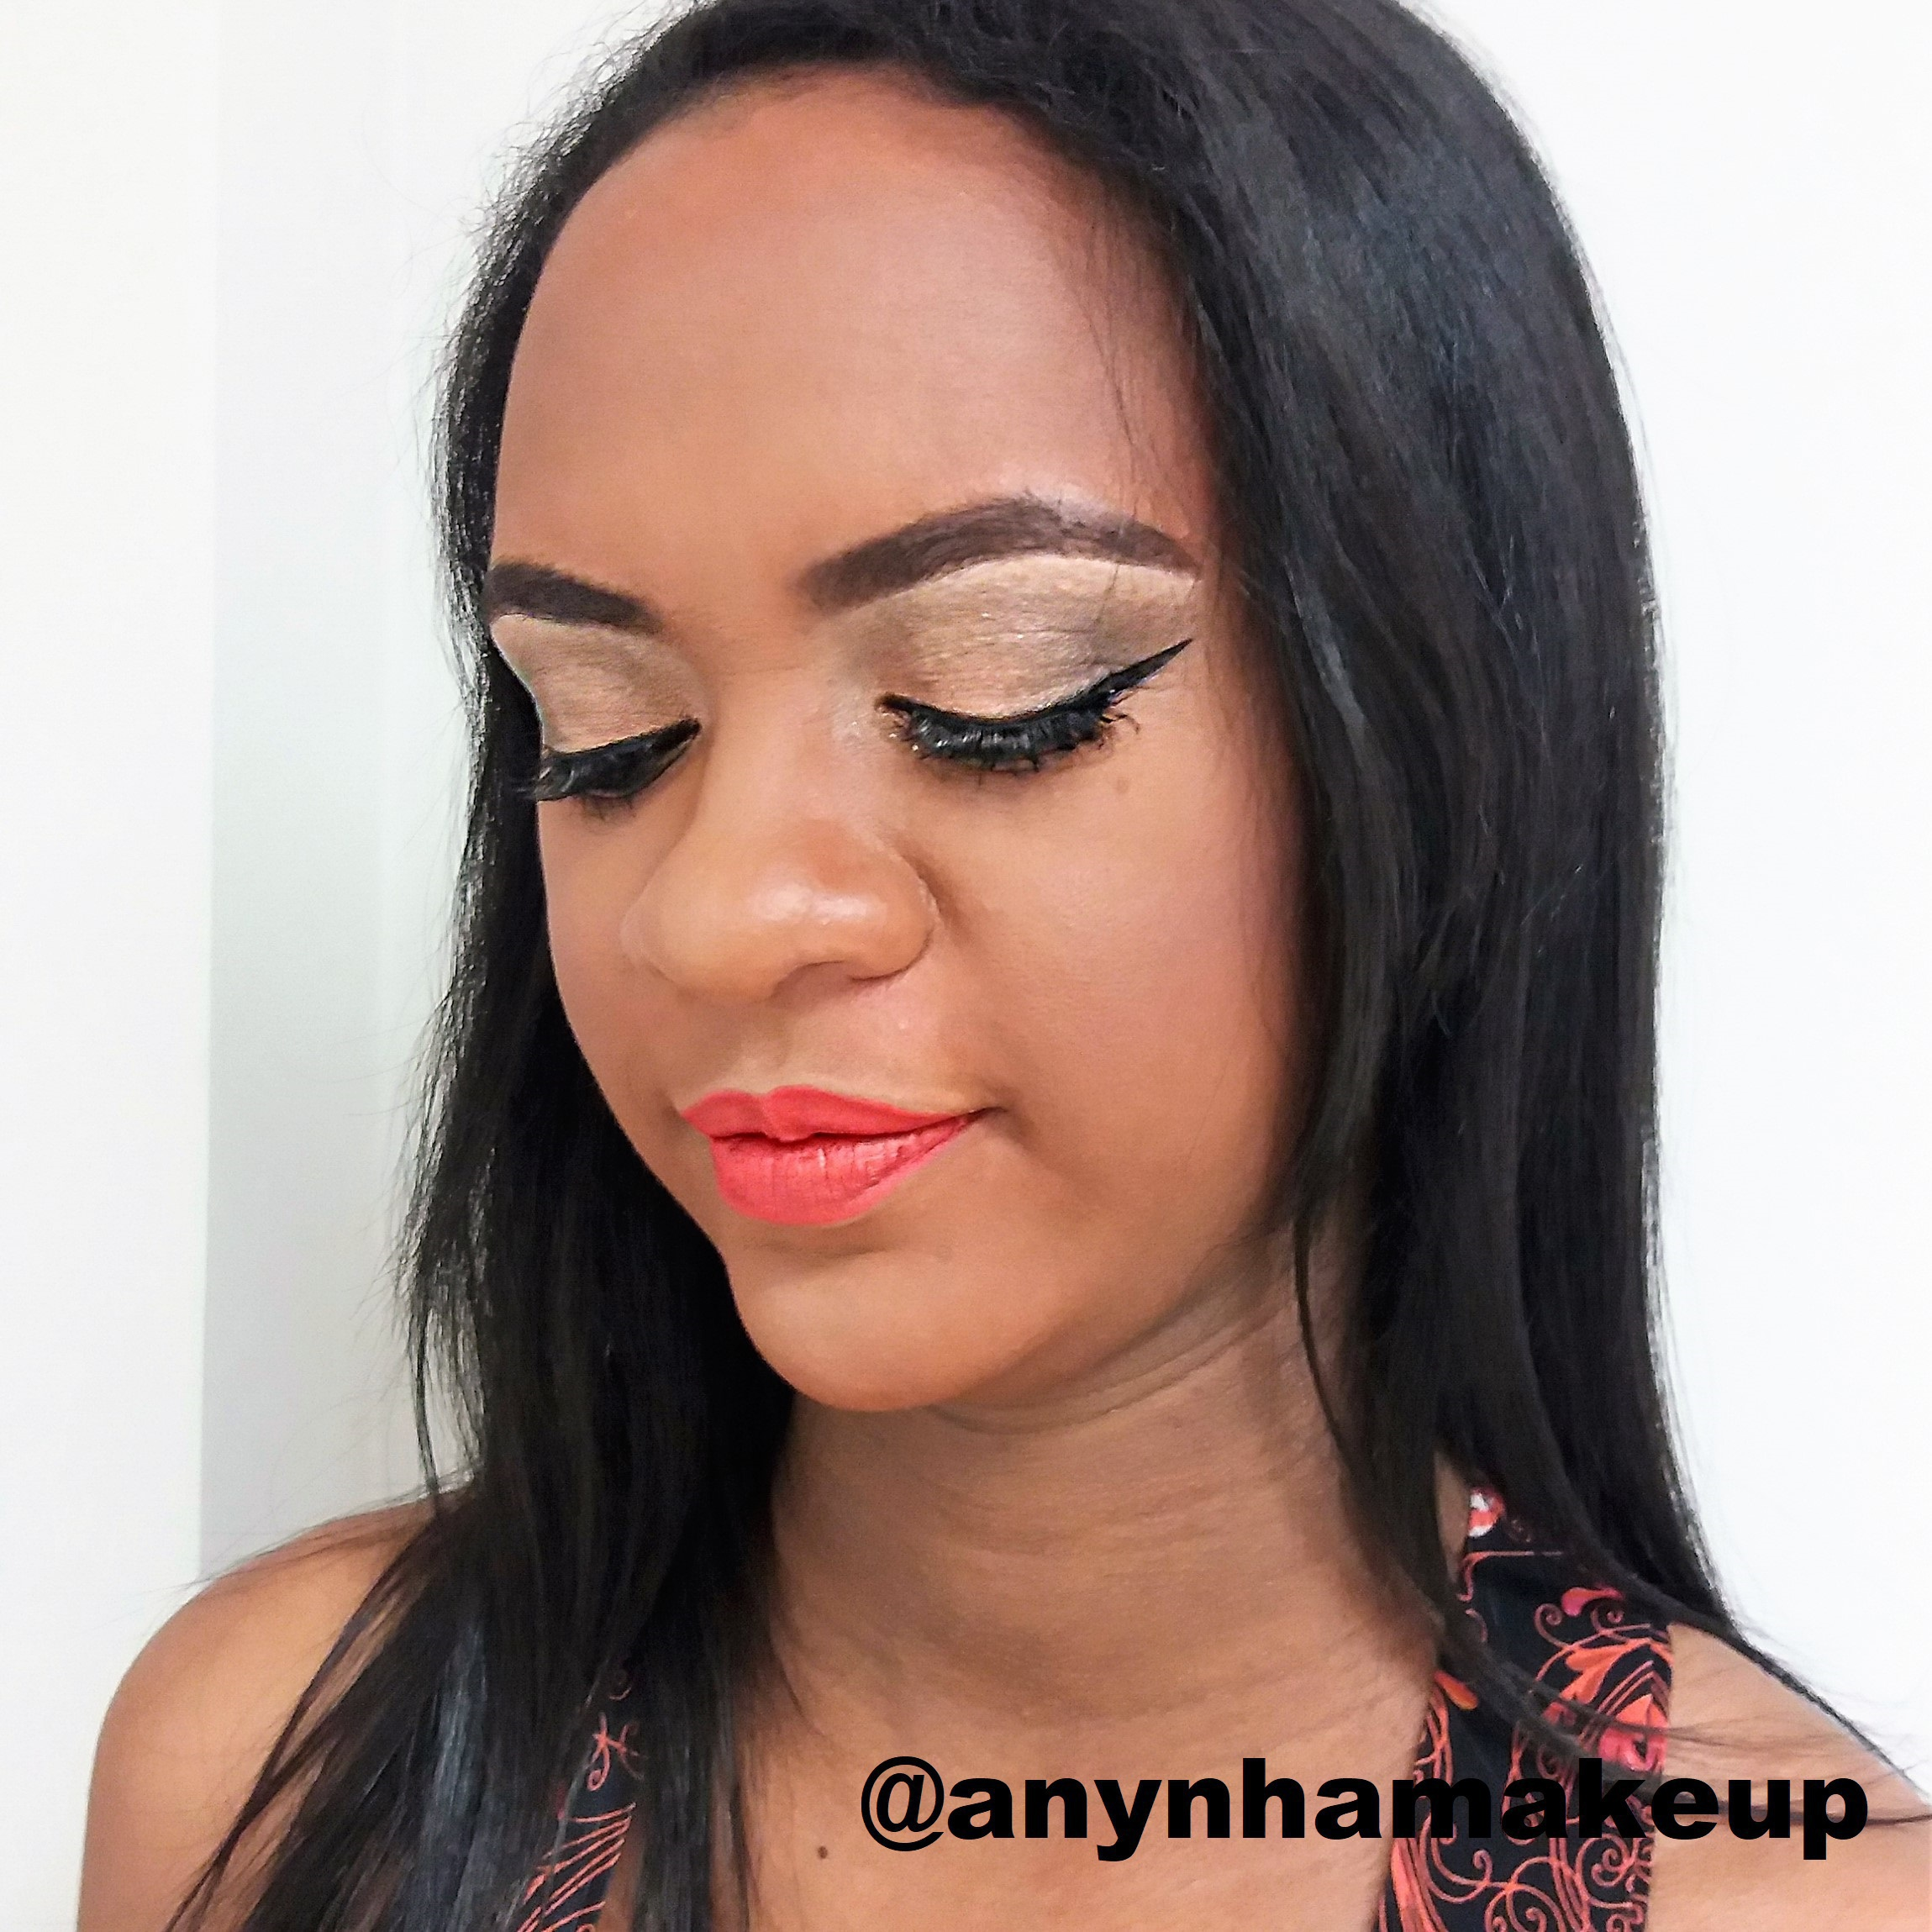 Maquiagem clássica 